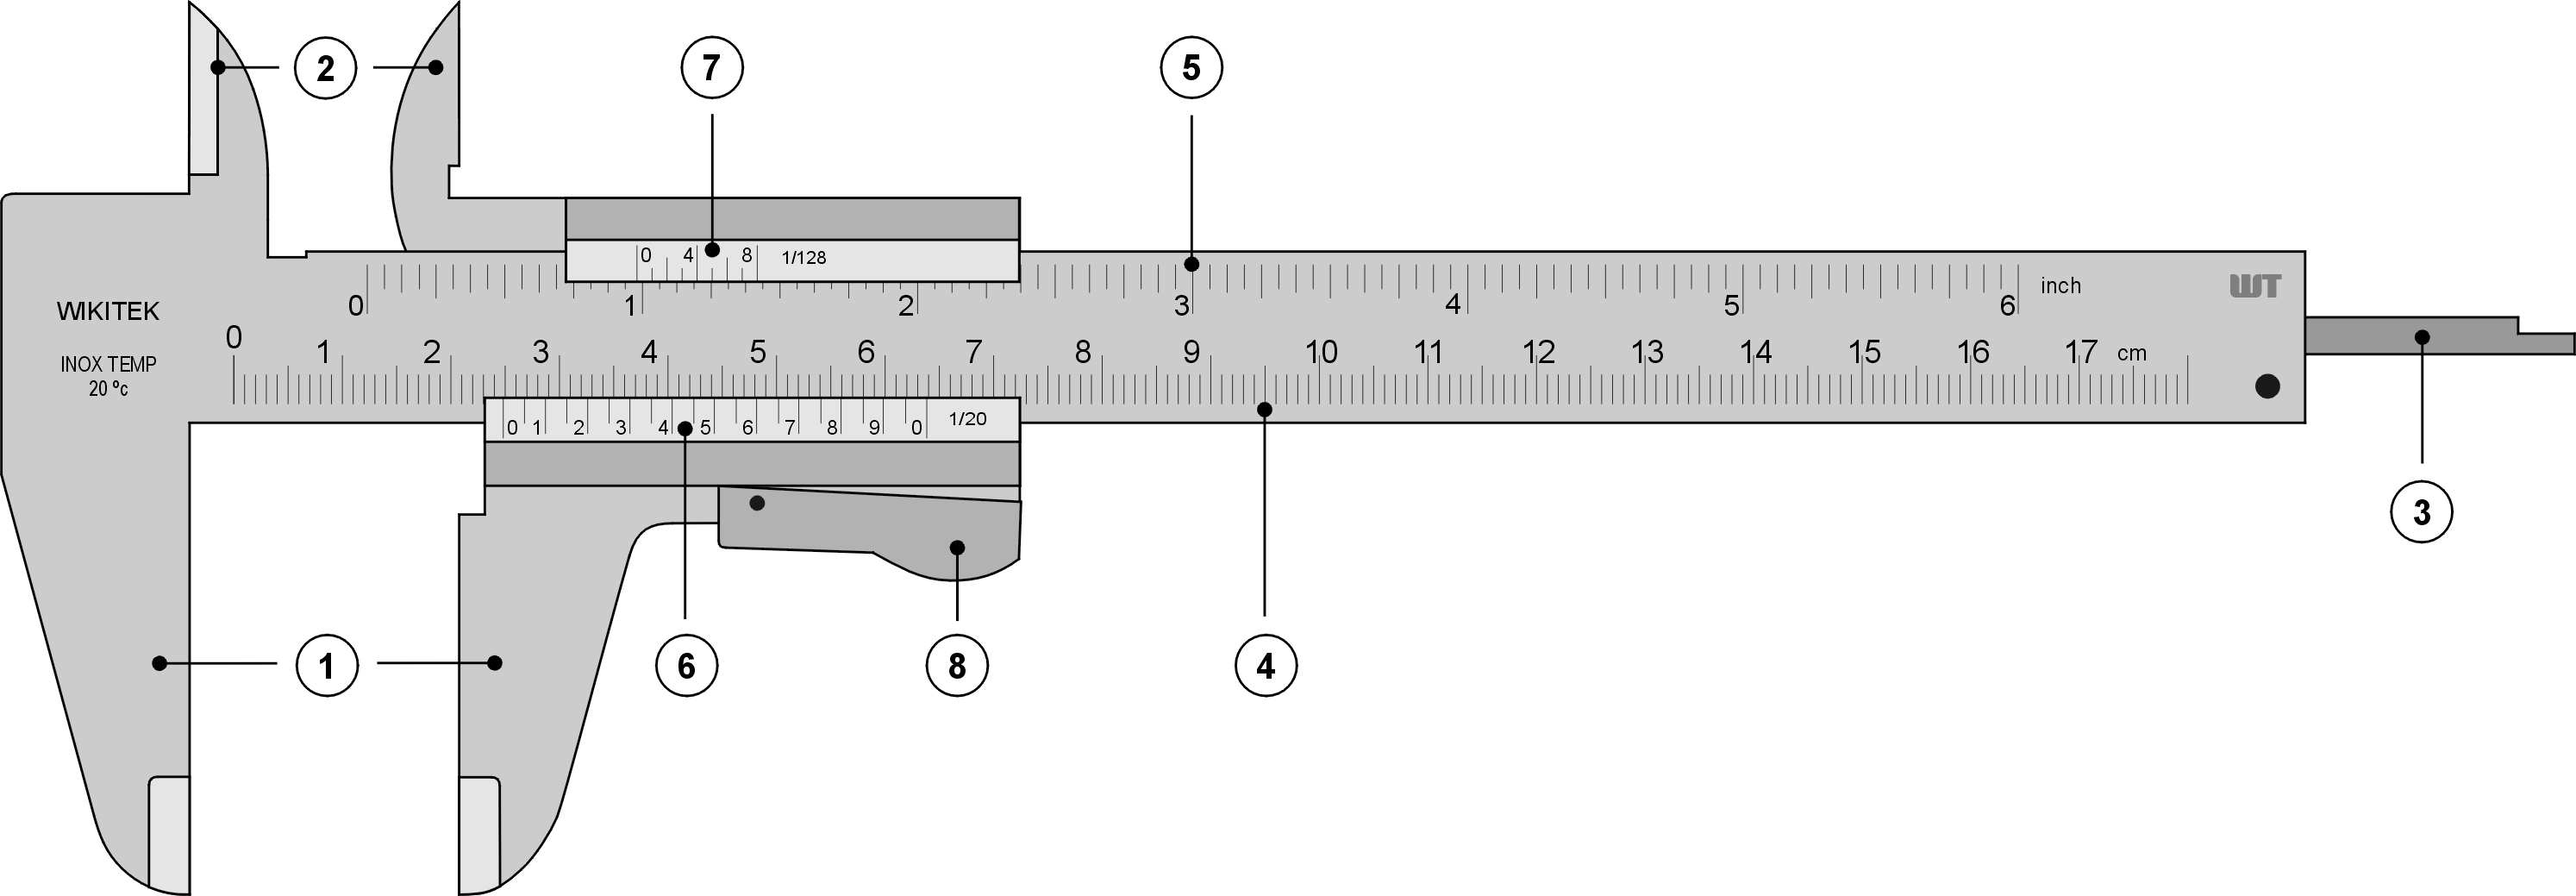 Reading Vernier Calipers Practice Worksheet